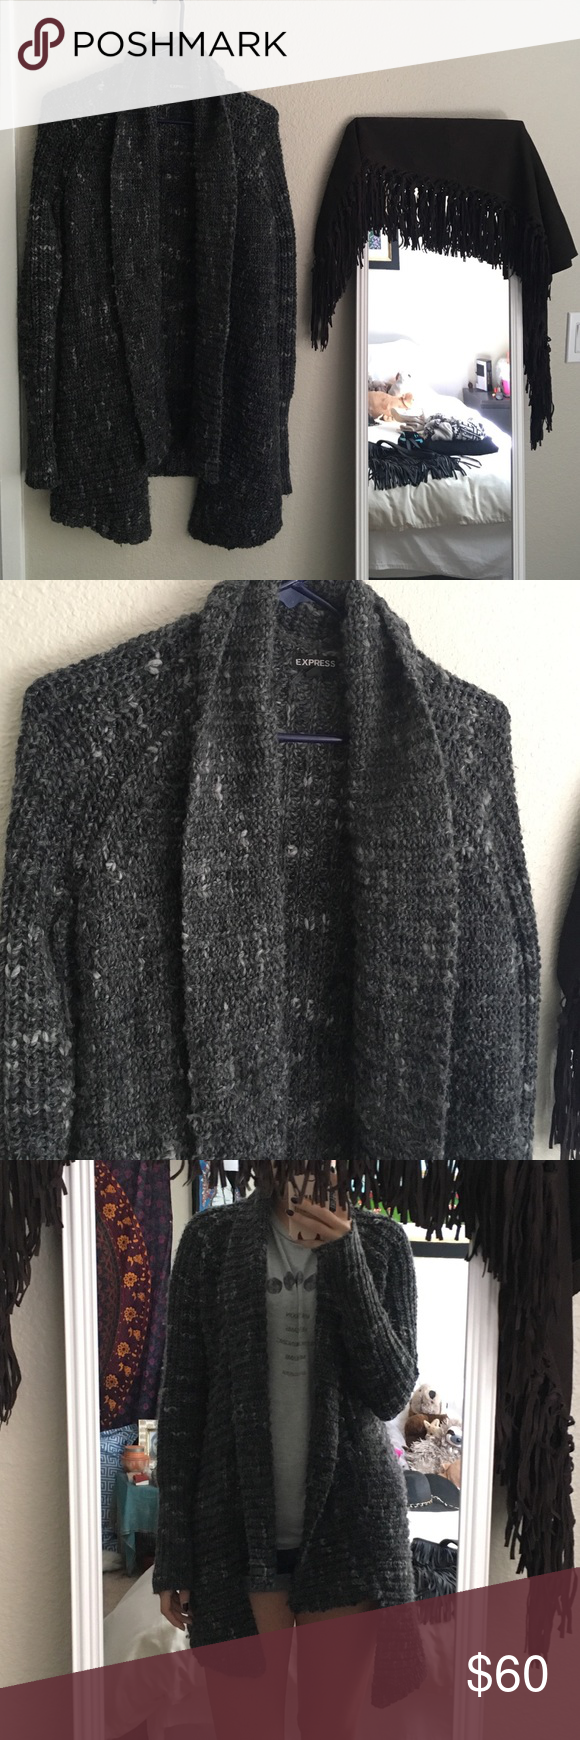 Dark gray Express knit cardigan Dark gray knit Express cardigan sweater. Good used condition. Size small. Express Sweaters Cardigans